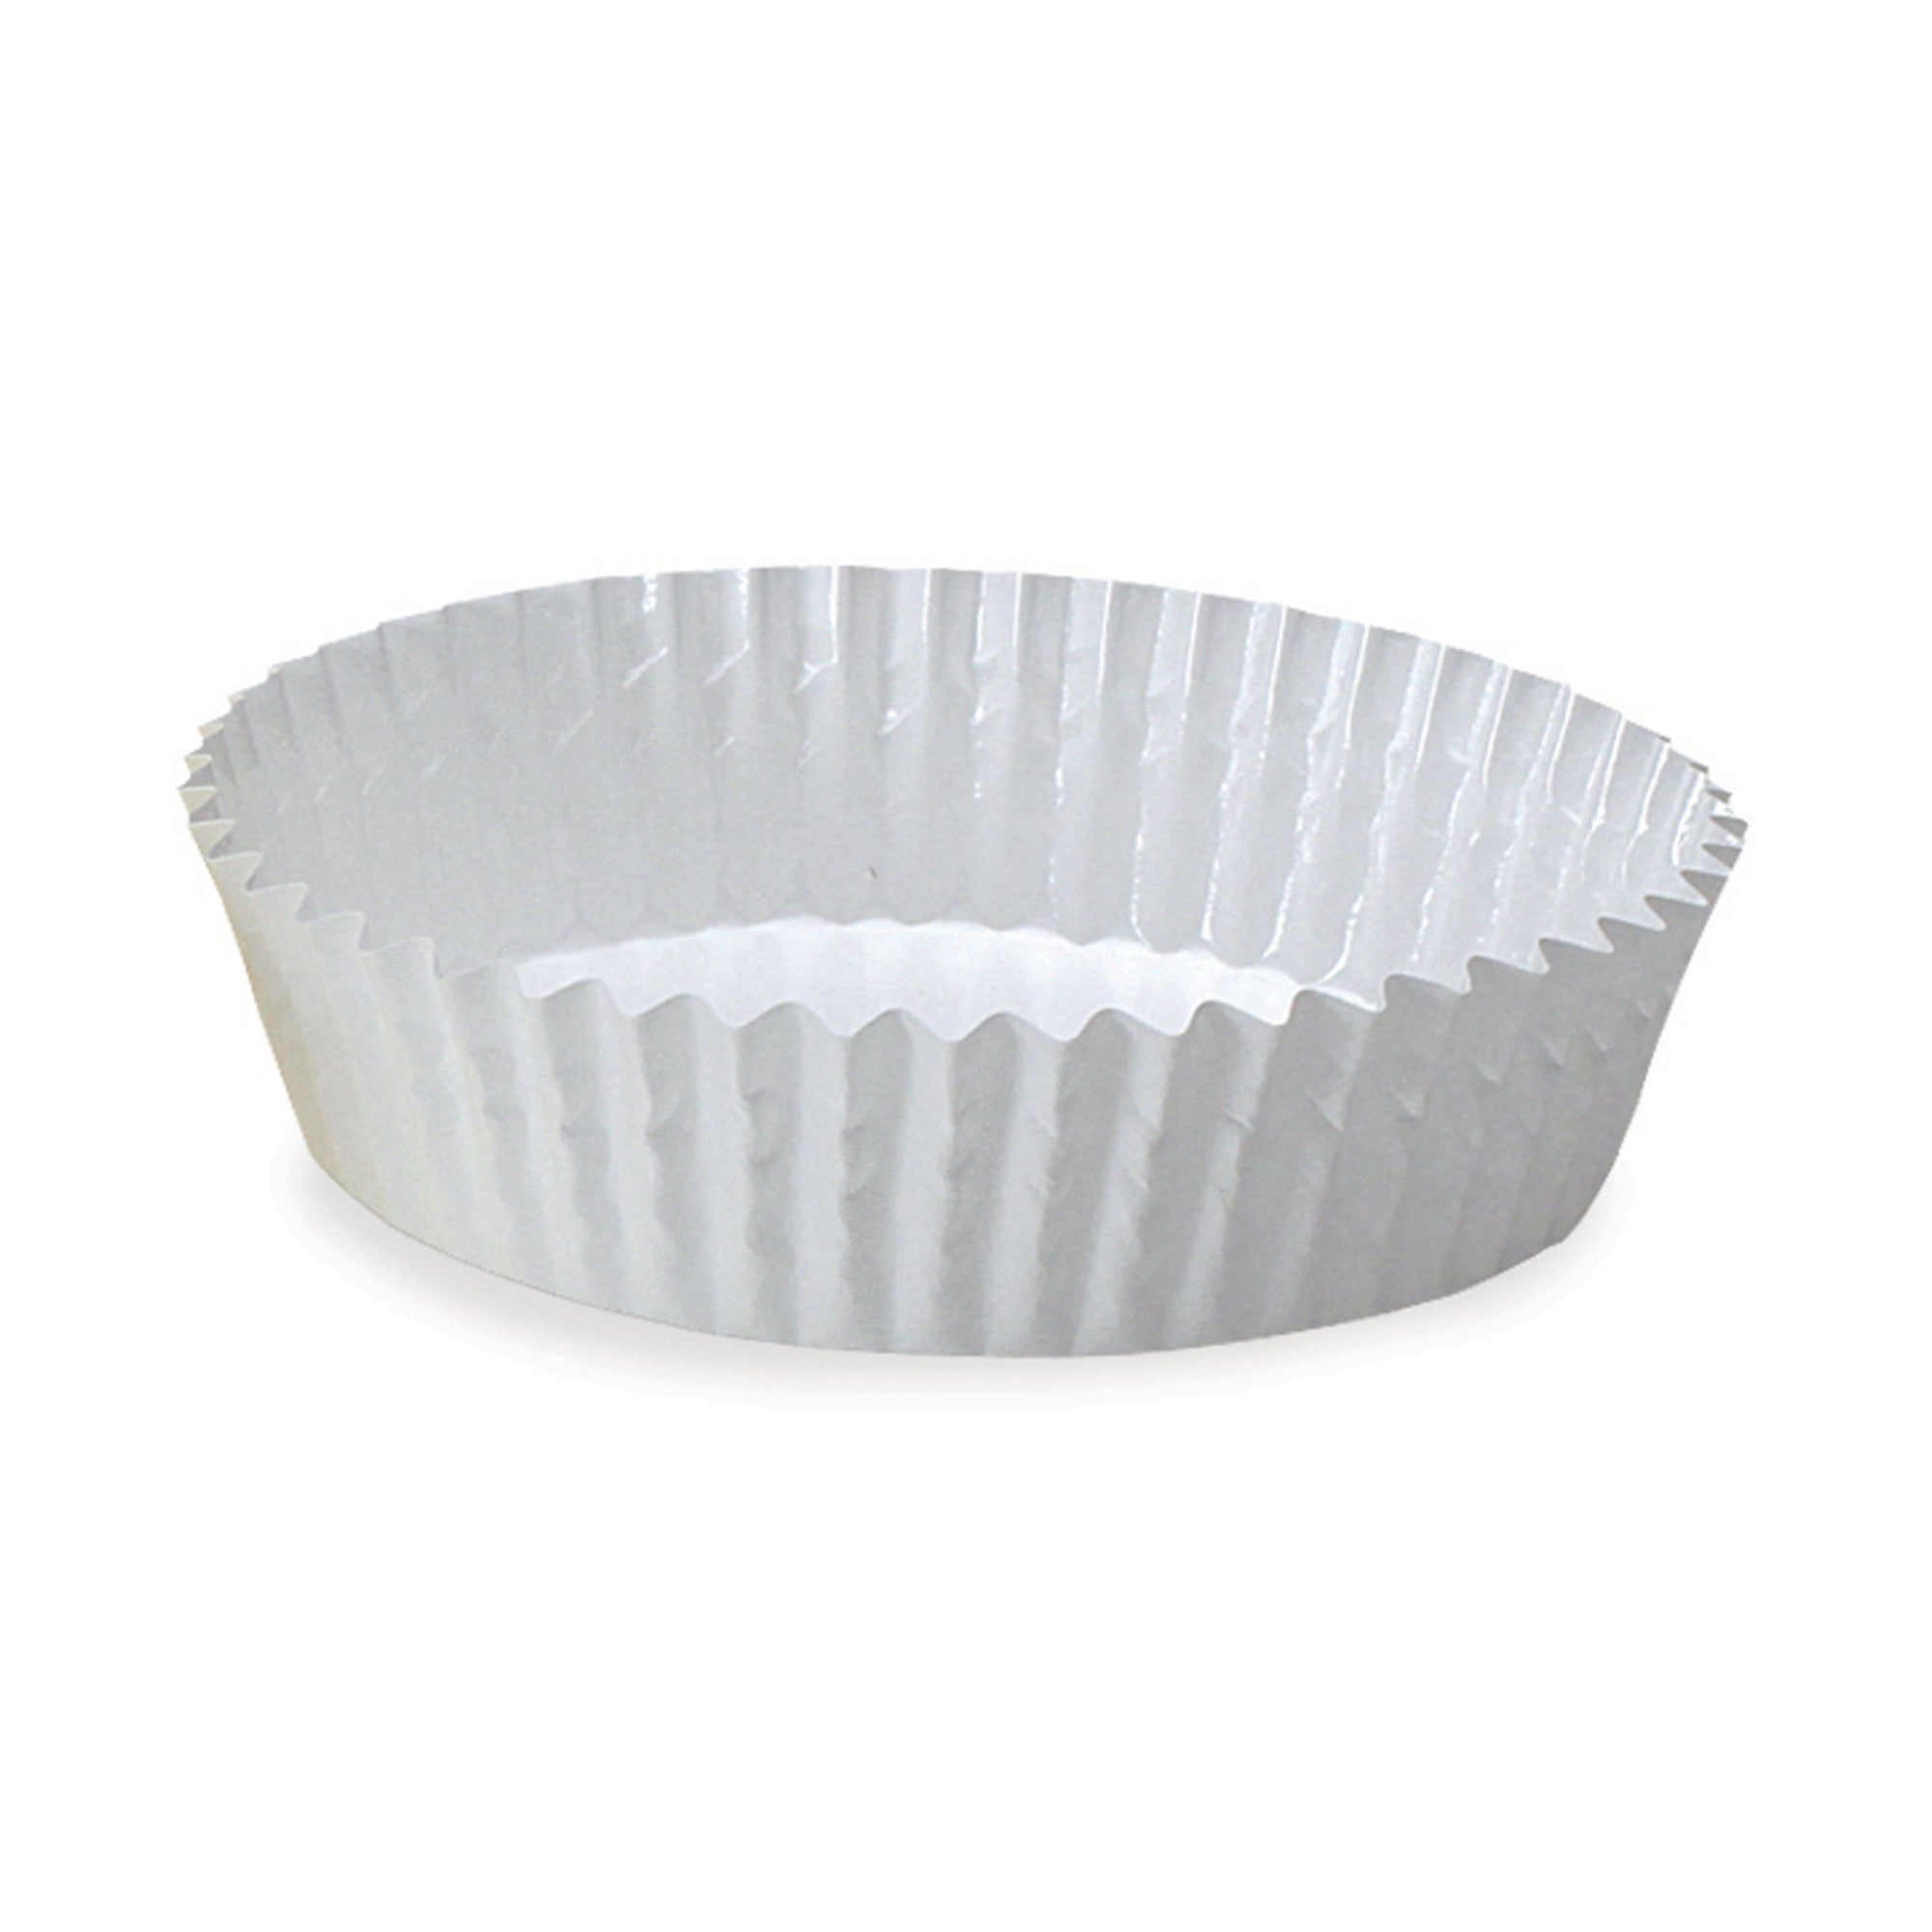 Ruffled Baking Cups, PTC09020W - Welcome Home Brands